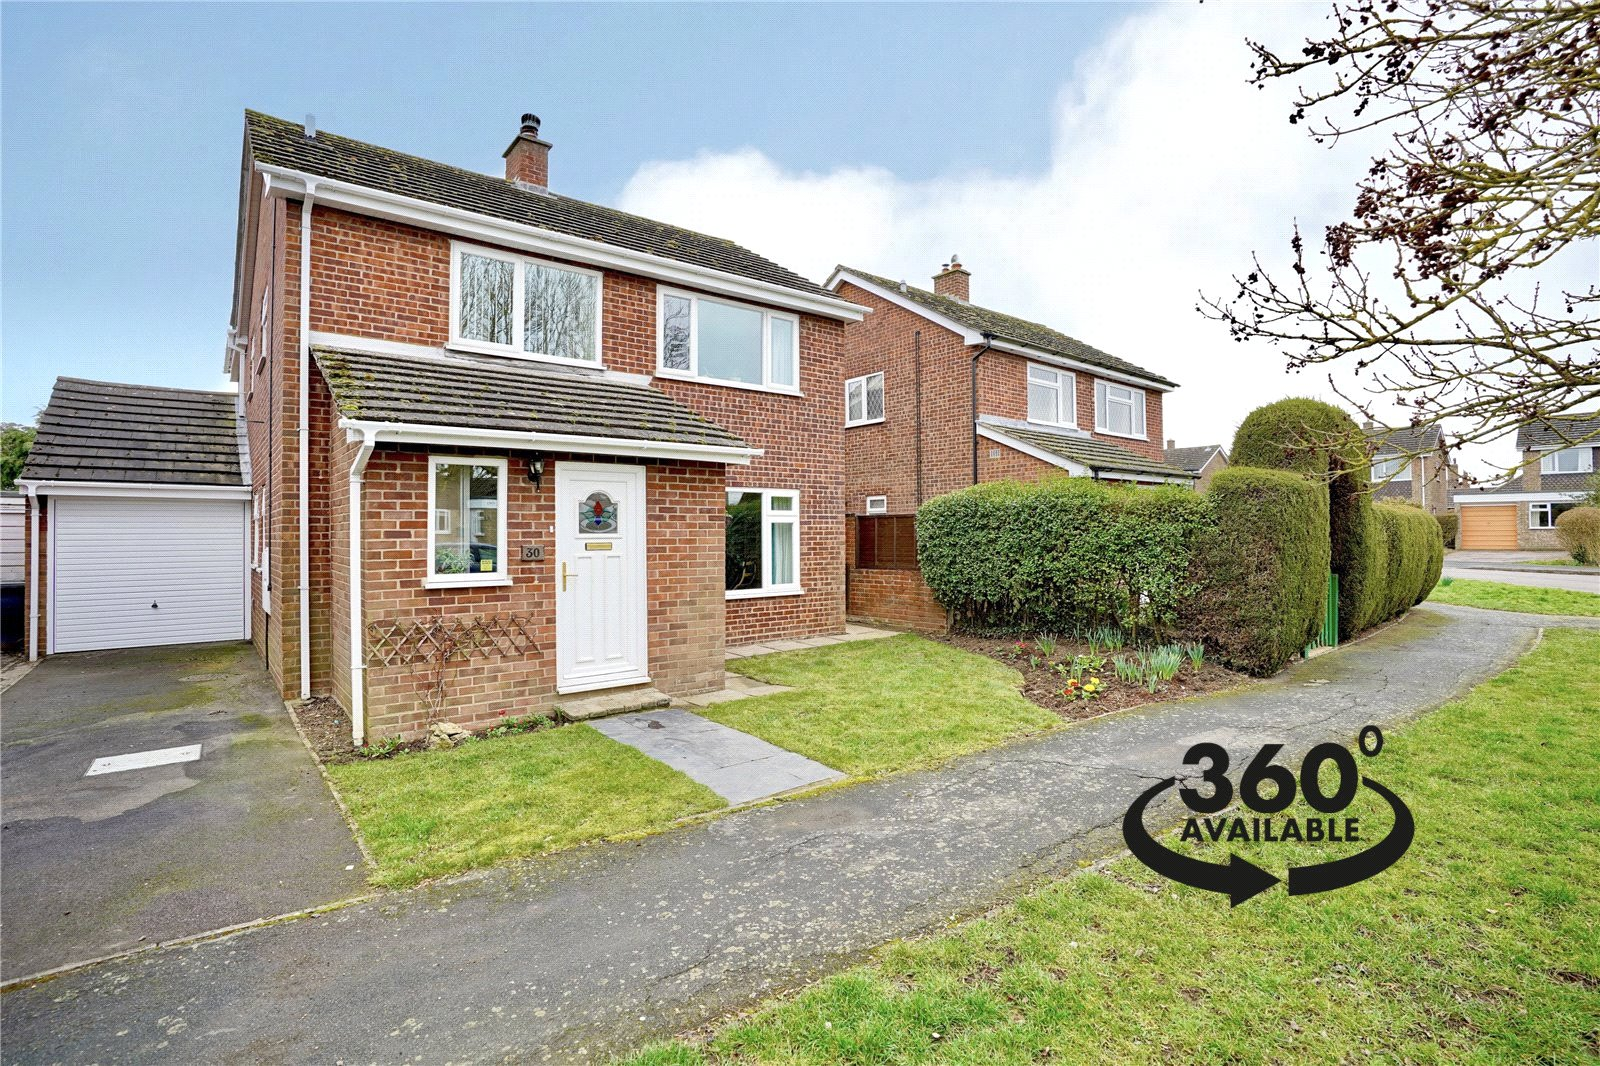 4 bed house for sale in Beachampstead Road, Great Staughton - Property Image 1